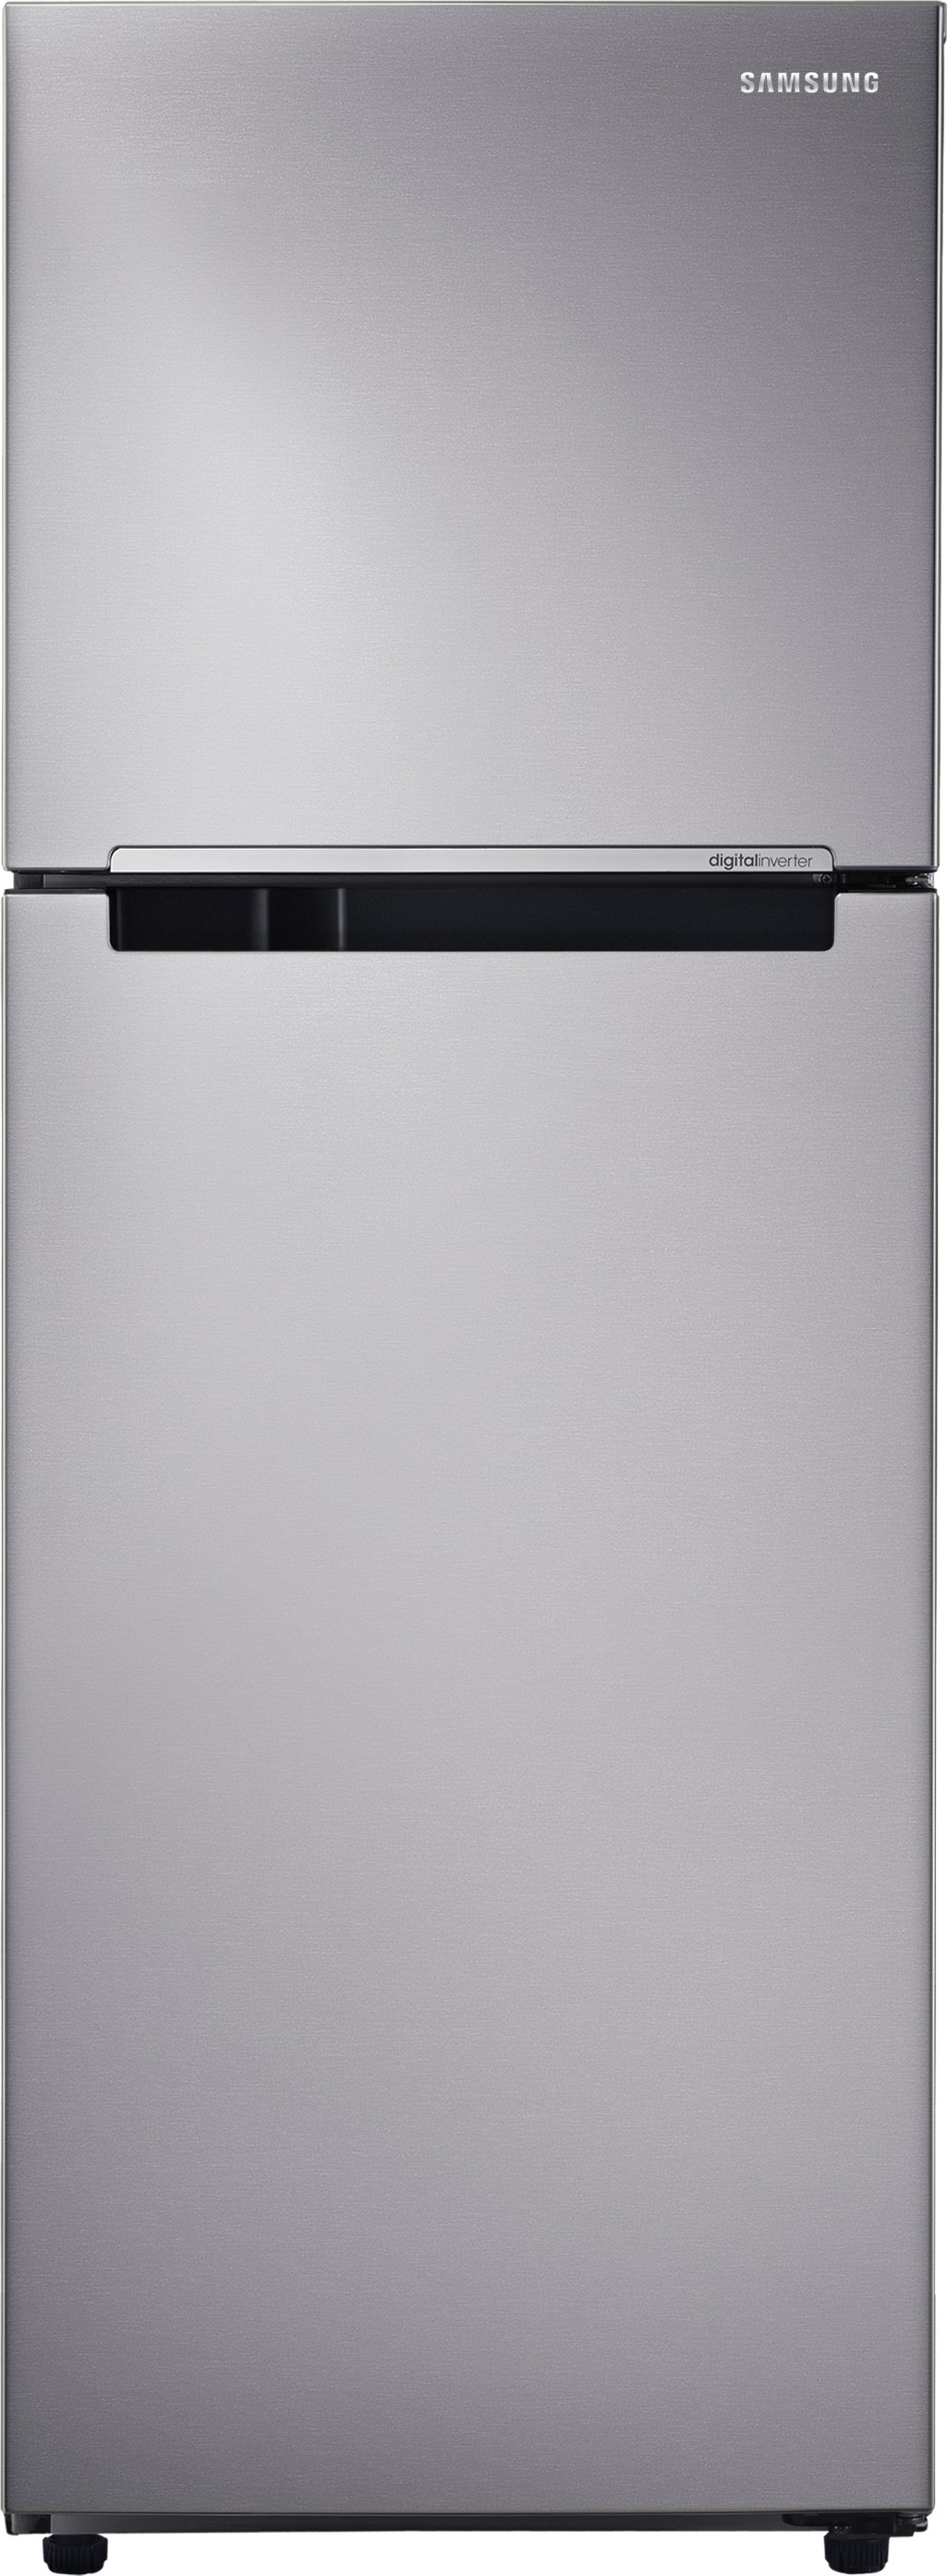 Deals | 251 L and Above Samsung Frost Free Refrigerators